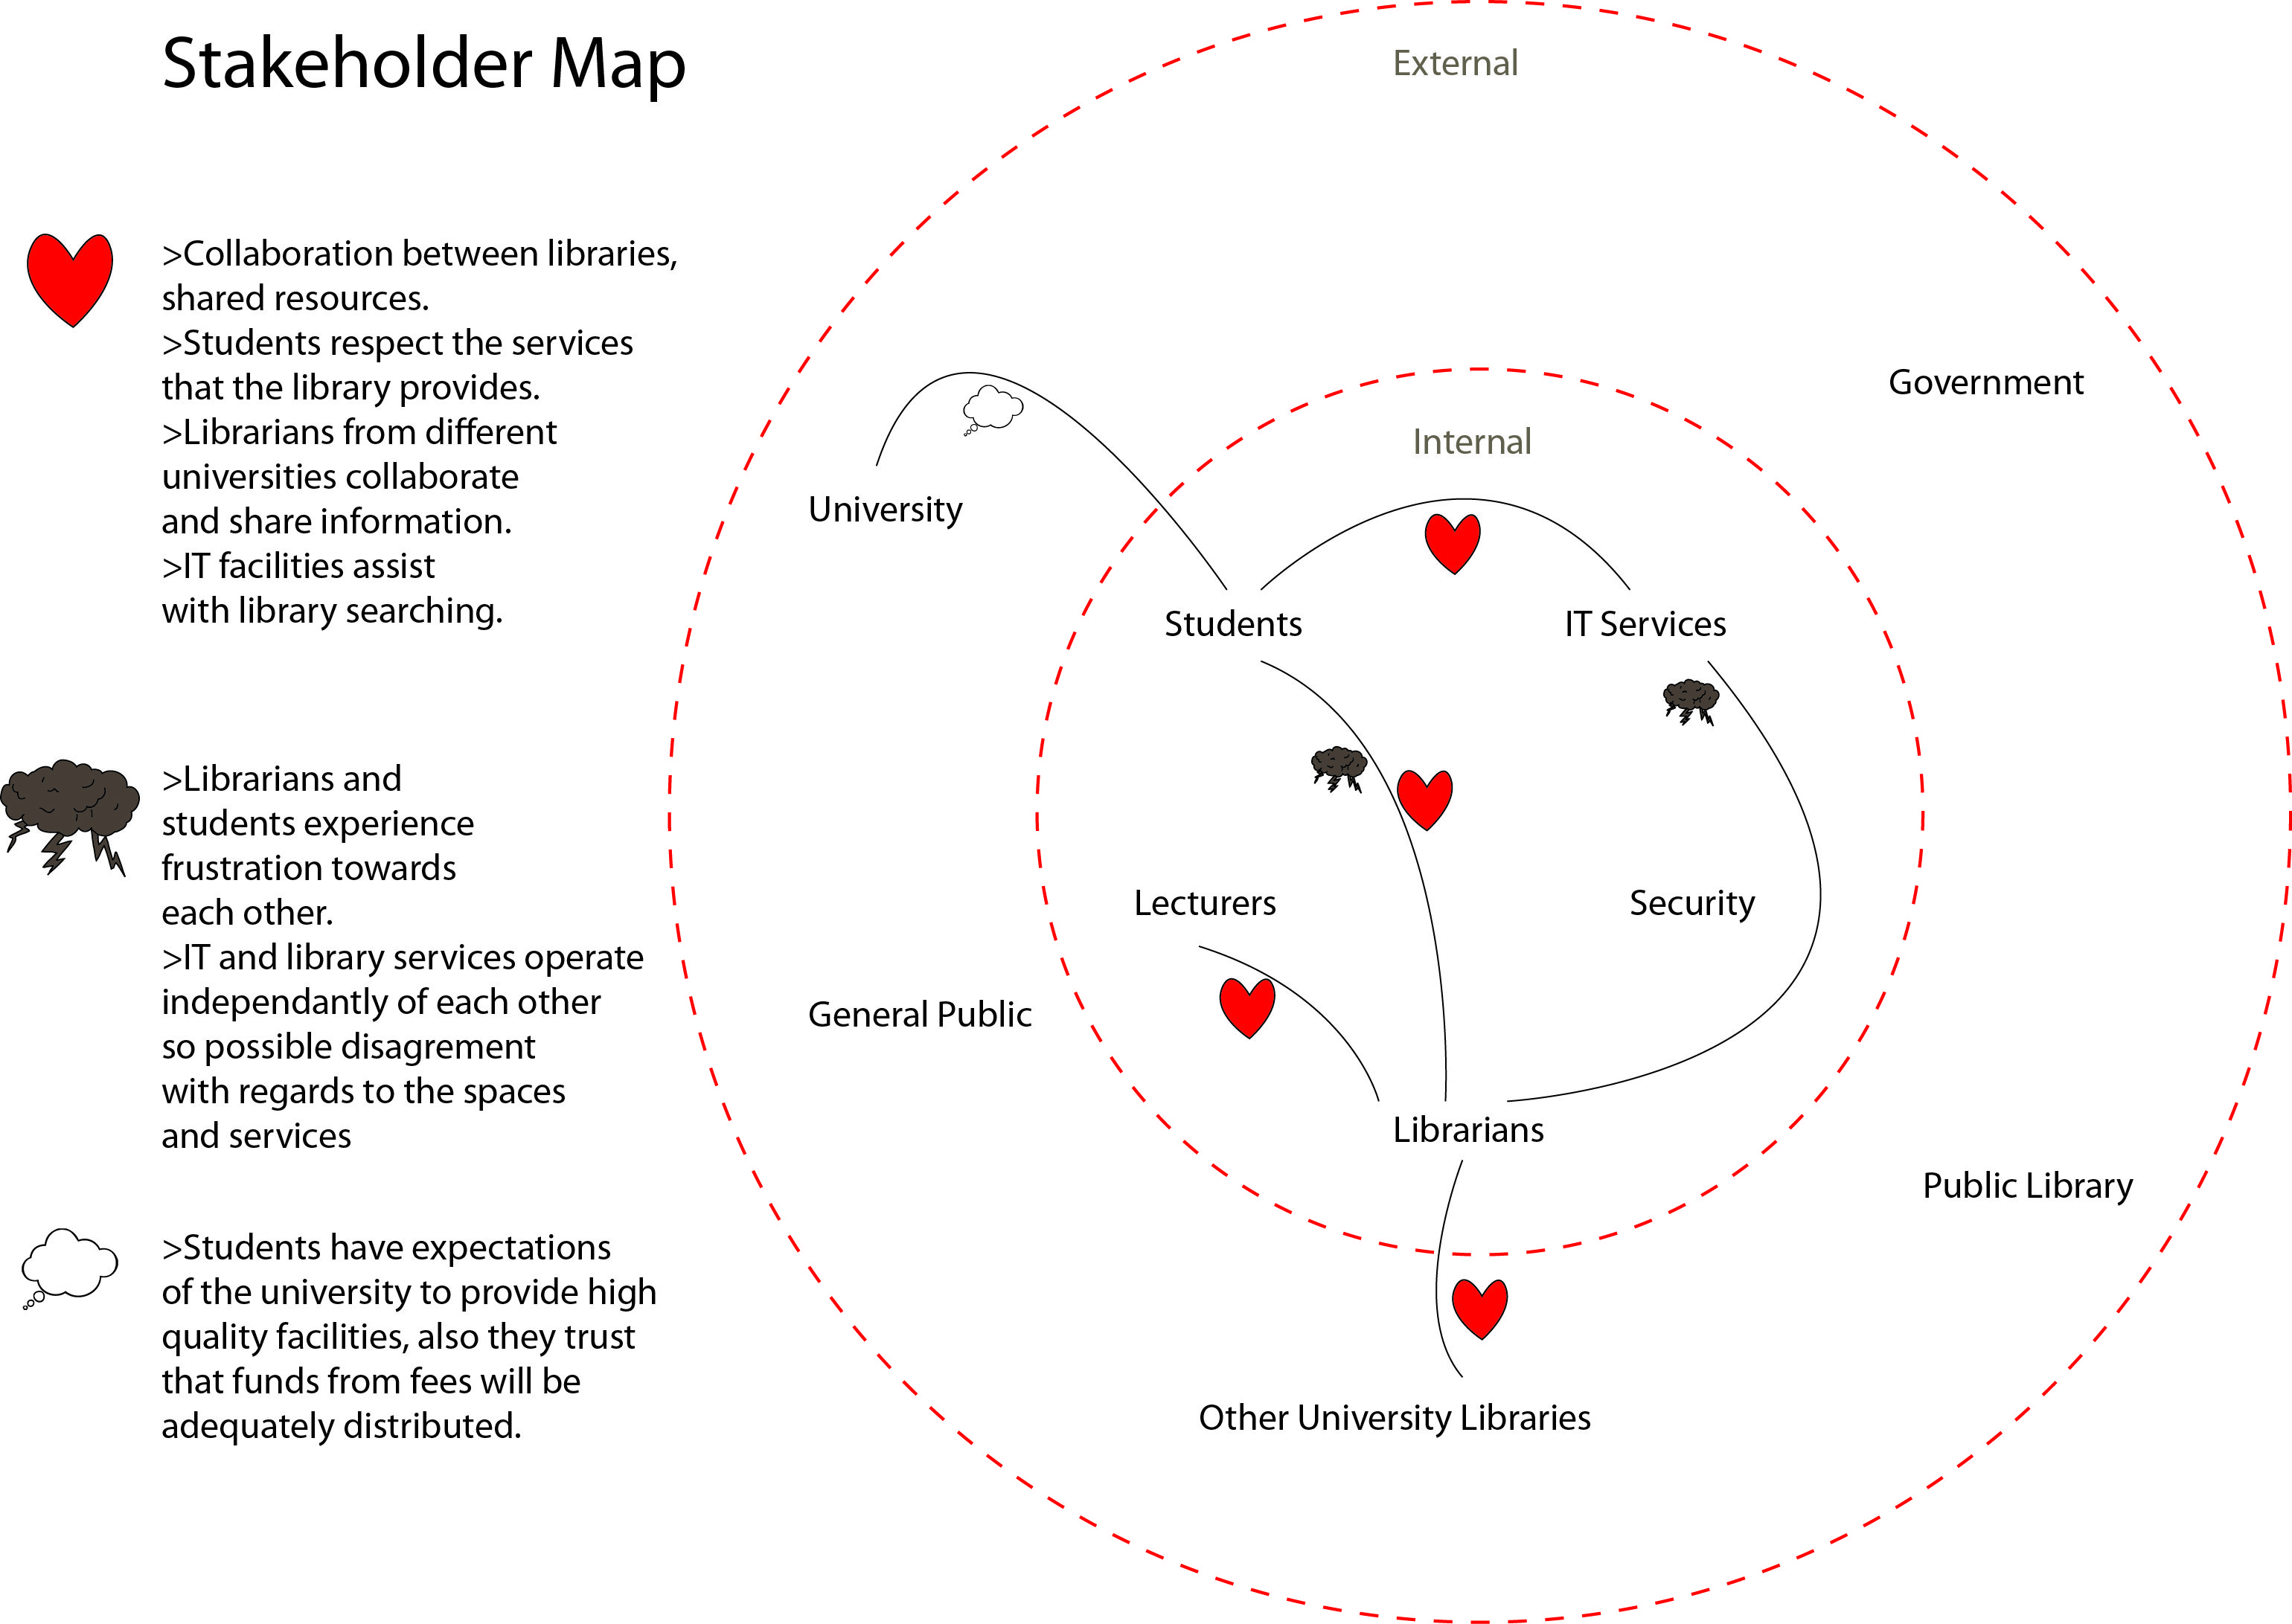 medium resolution of stakeholder map yahoo image search results yahoo images line chart image search